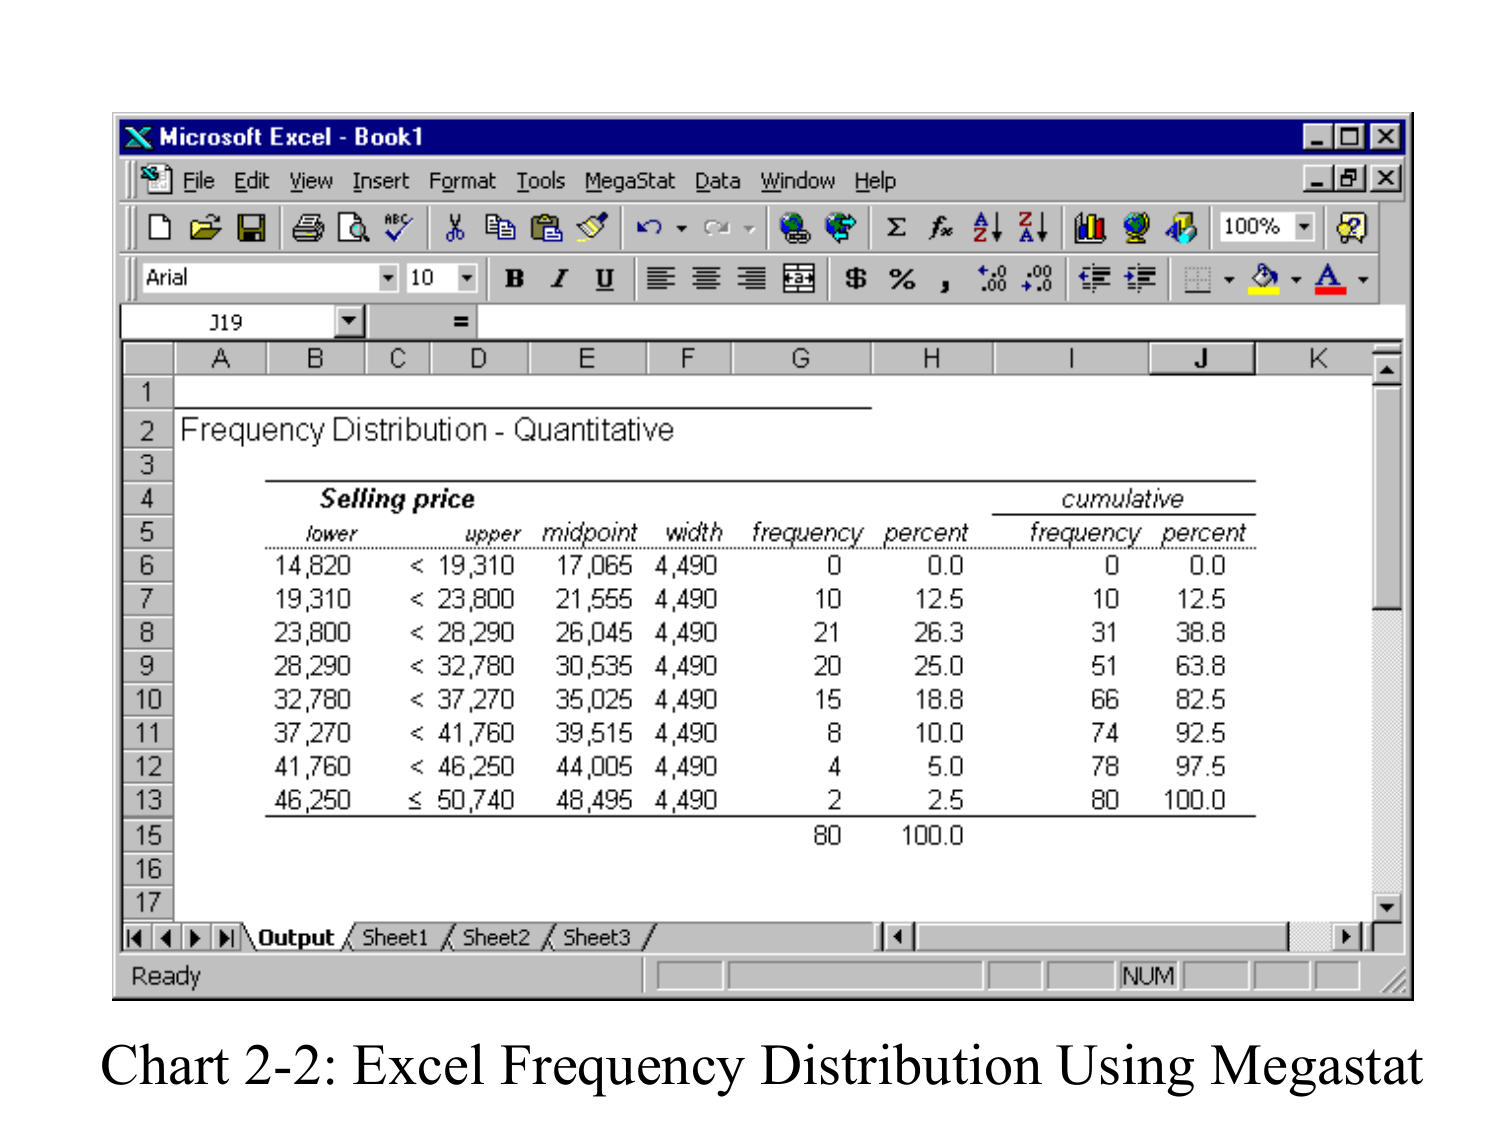 Frequency Distribution Of Data Using Megastat